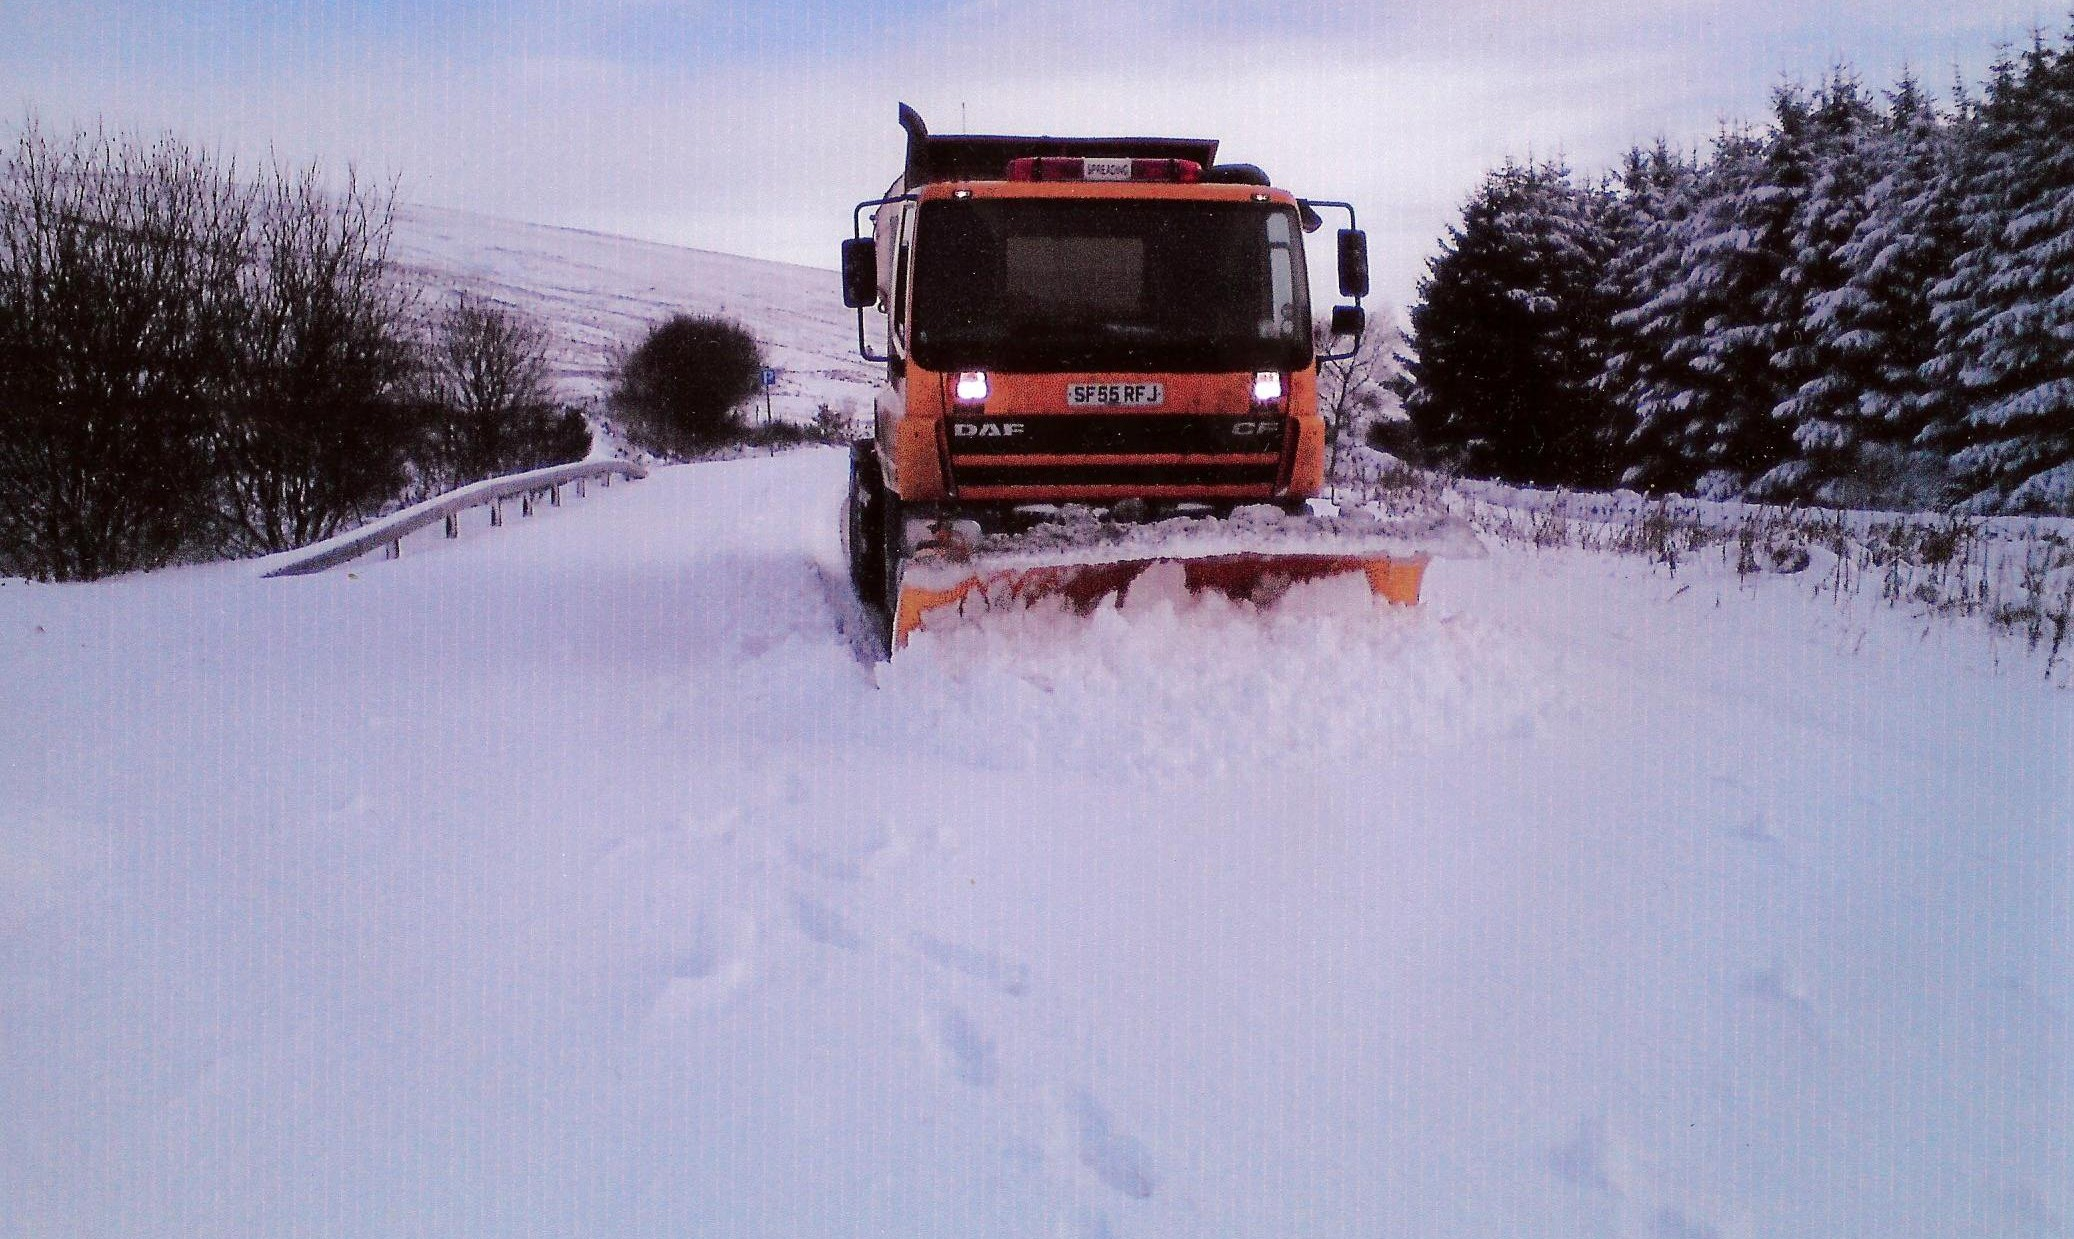 A Council plough working in Kintyre in March 2013